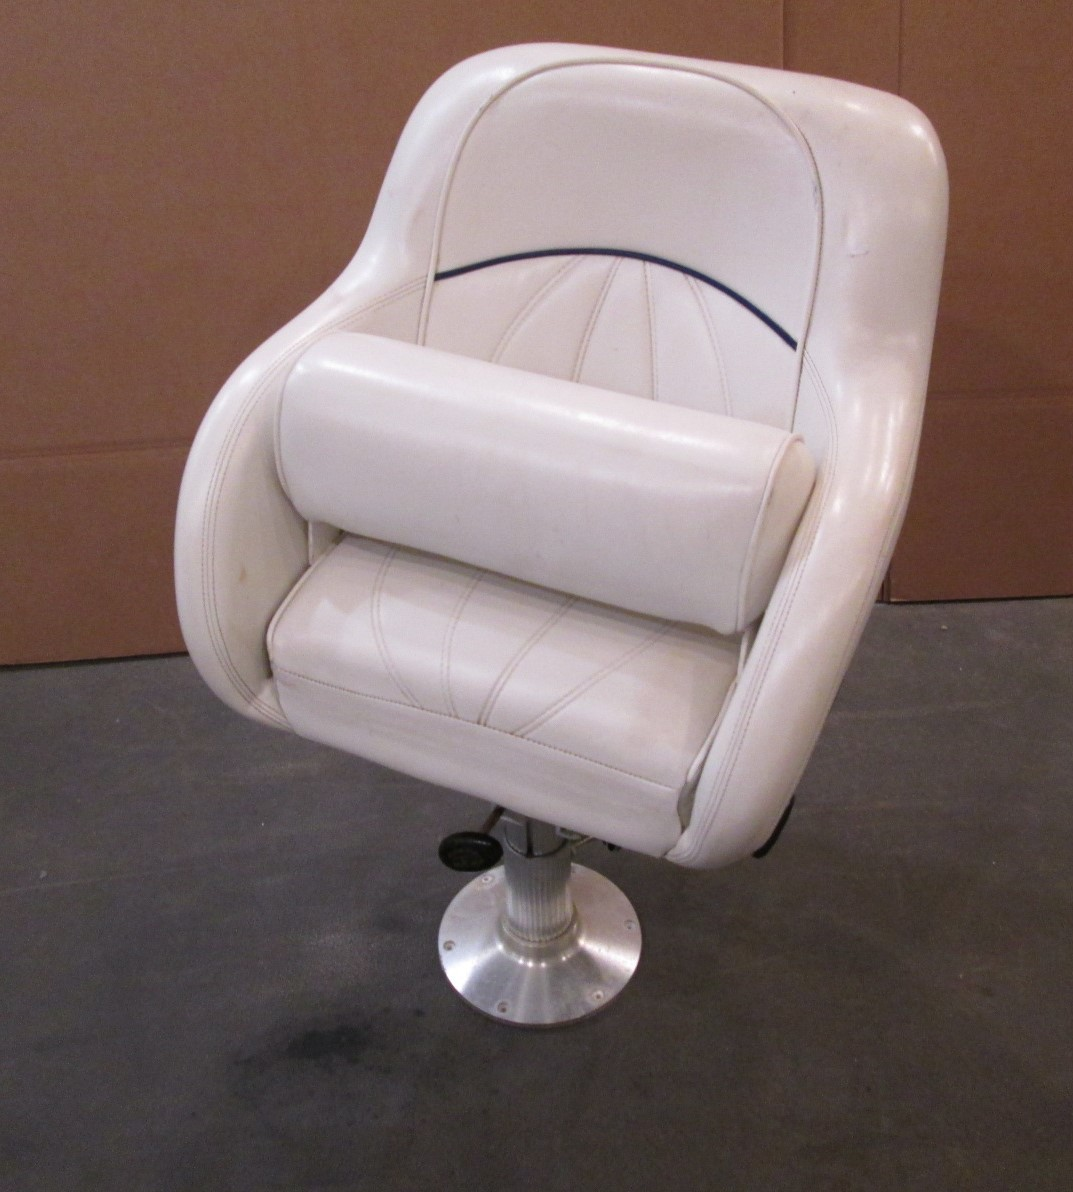 1998 Sea Ray Signature 230 Boat Bolstered Captains Seat